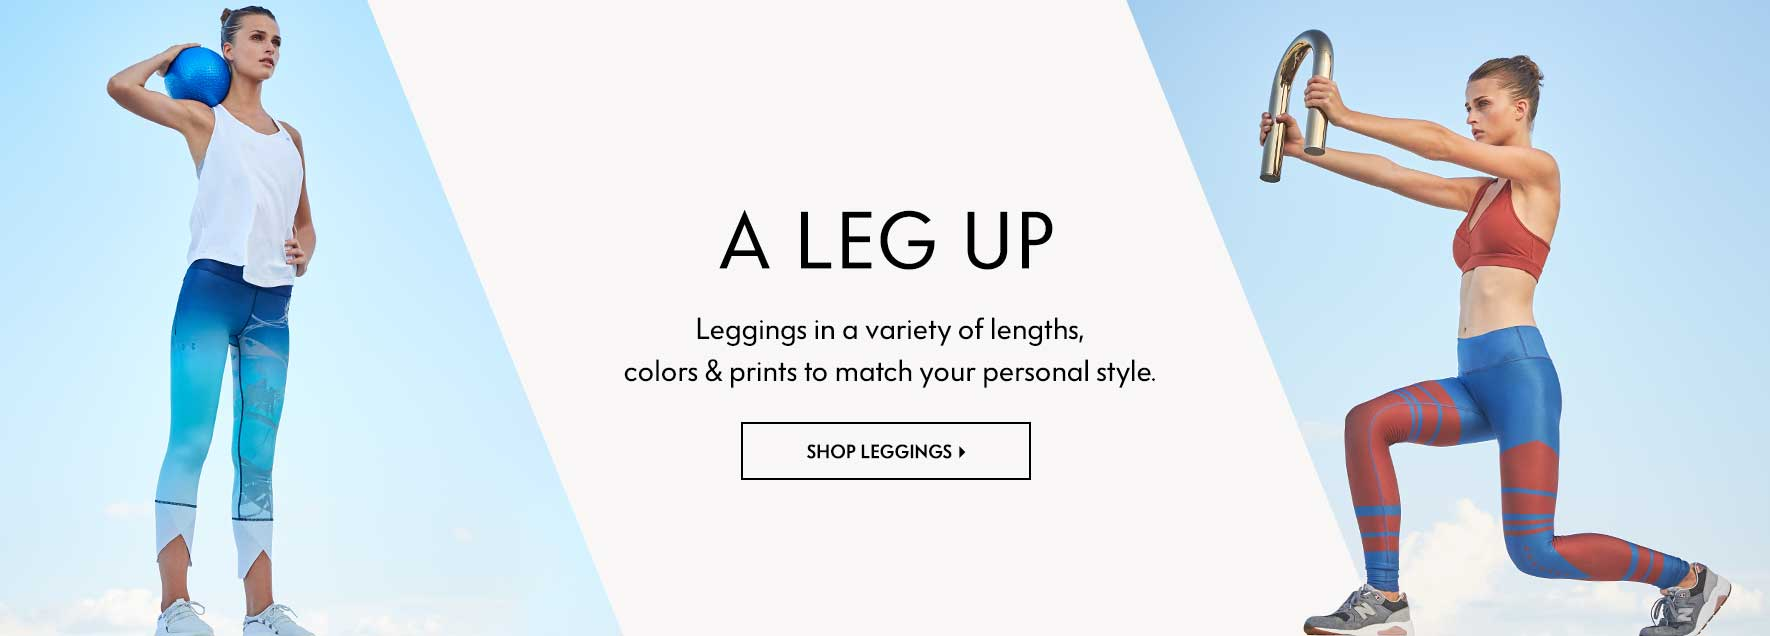 A Leg Up: Leggings in a variety of lengths, colors & prints to match your personal style.